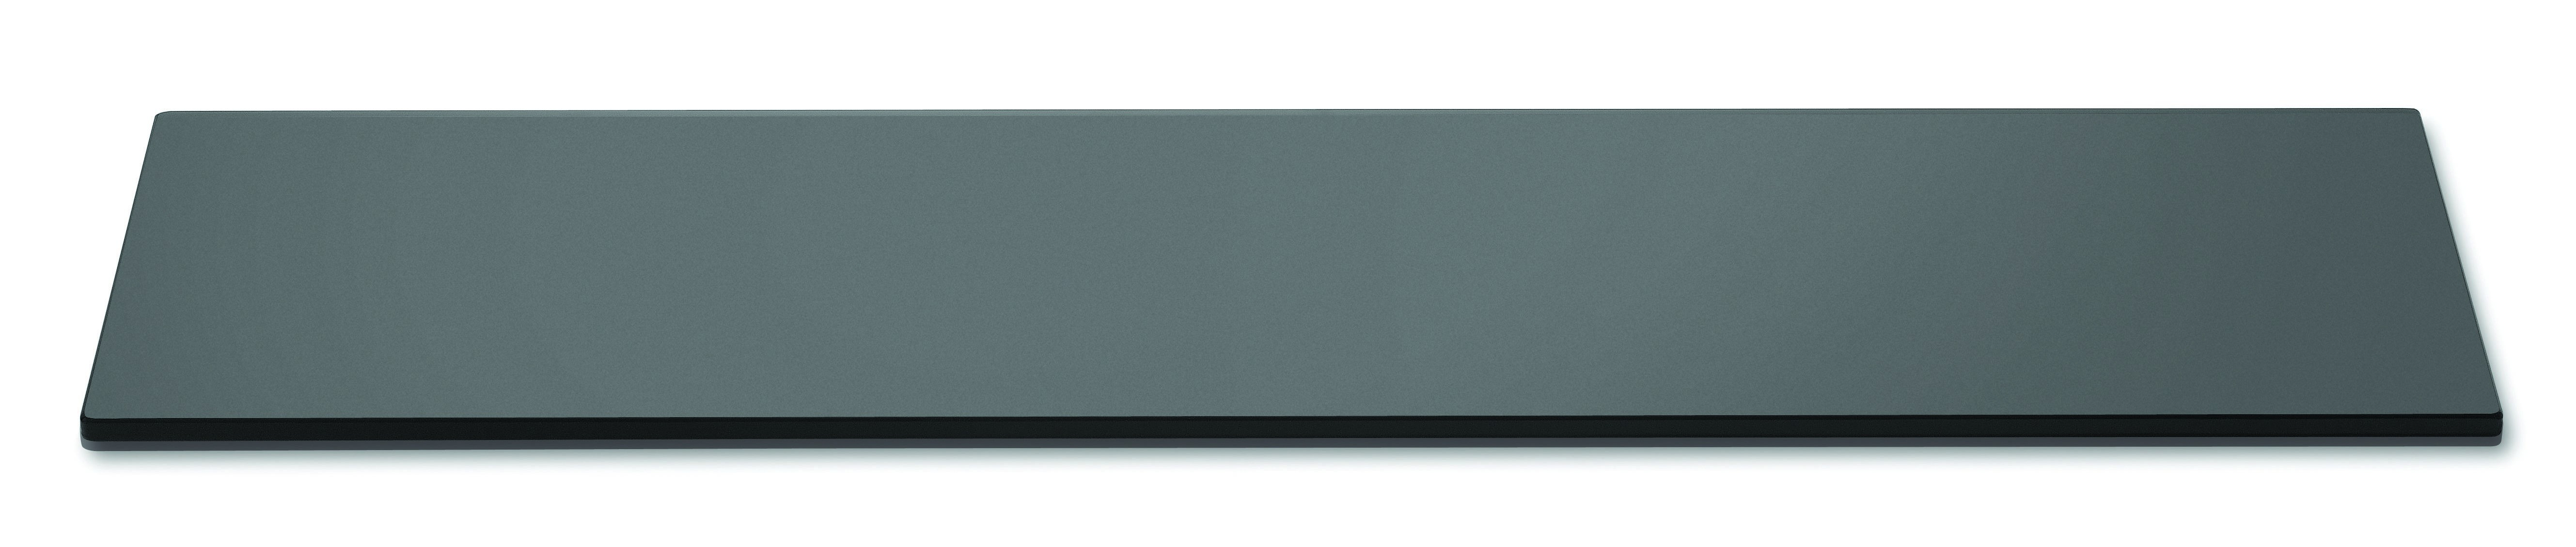 "Rosseto SG015 Narrow Rectangular Black Acrylic Surface 33.5"" x 7.75"""